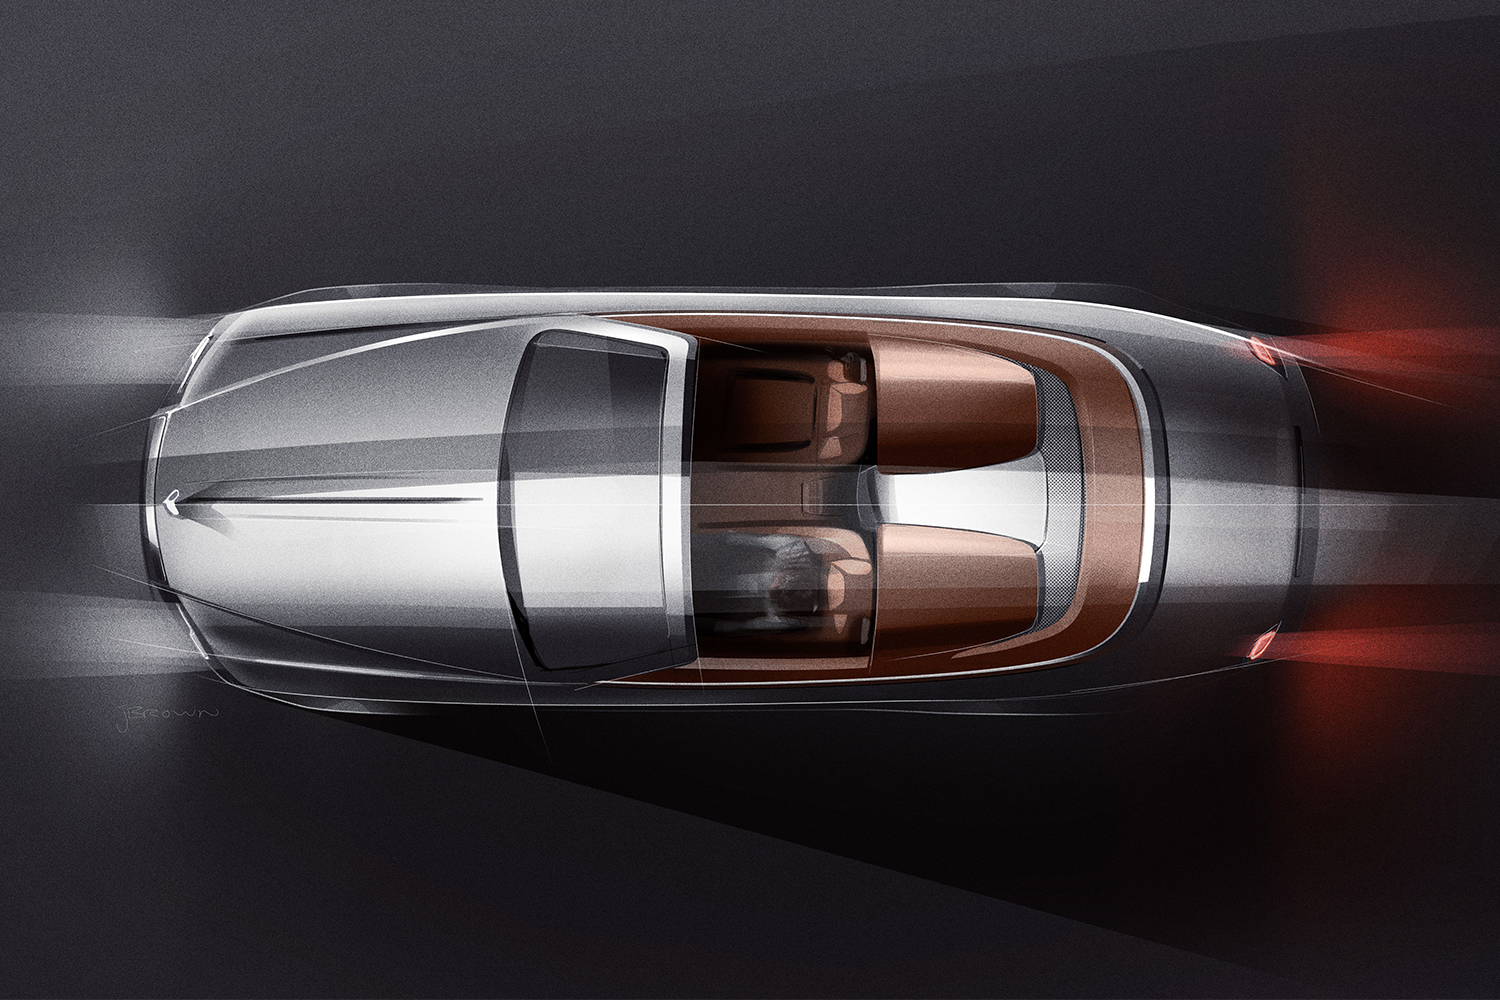 Top view of a Rolls-Royce convertible